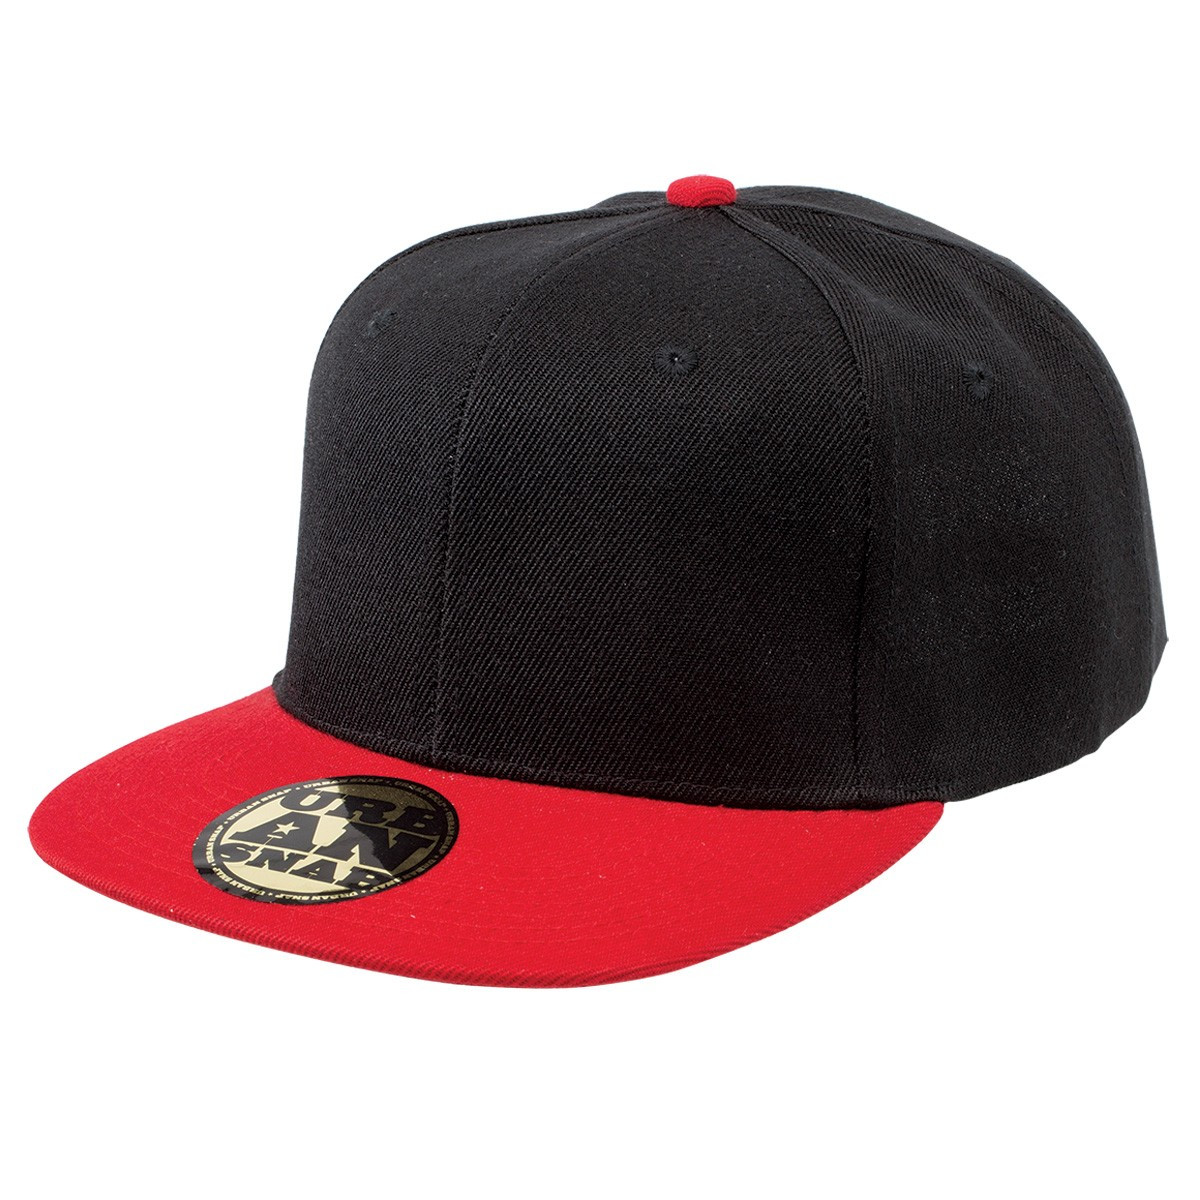 Freestyle Urban Snapback Wholesale Baseball Cap Online  17e58c1ec3f